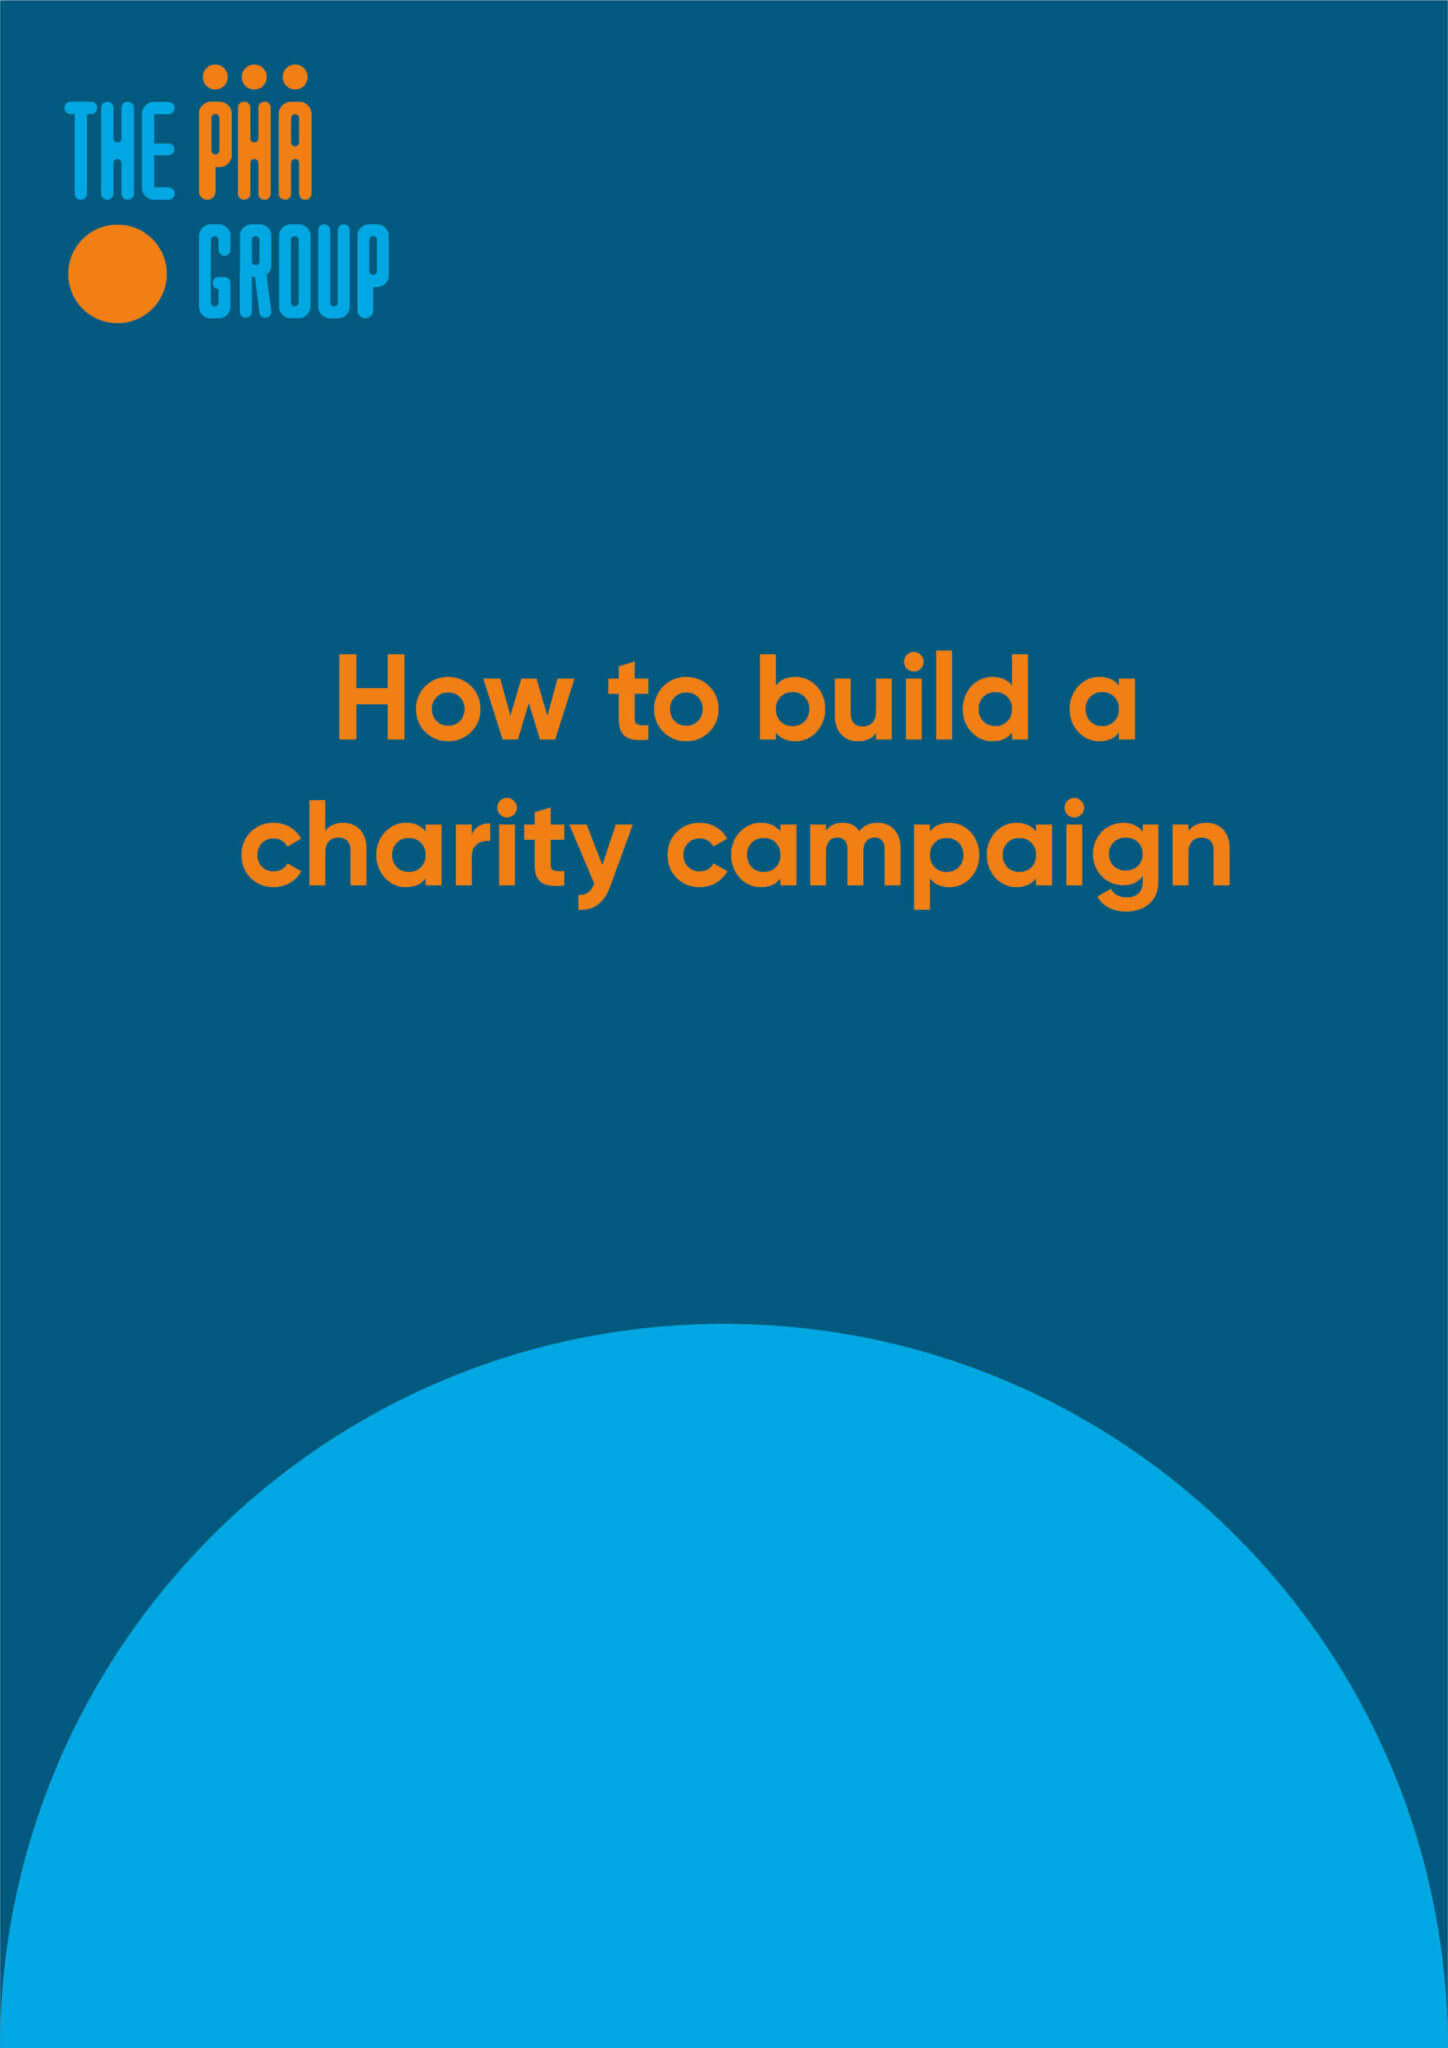 How to build a charity campaign